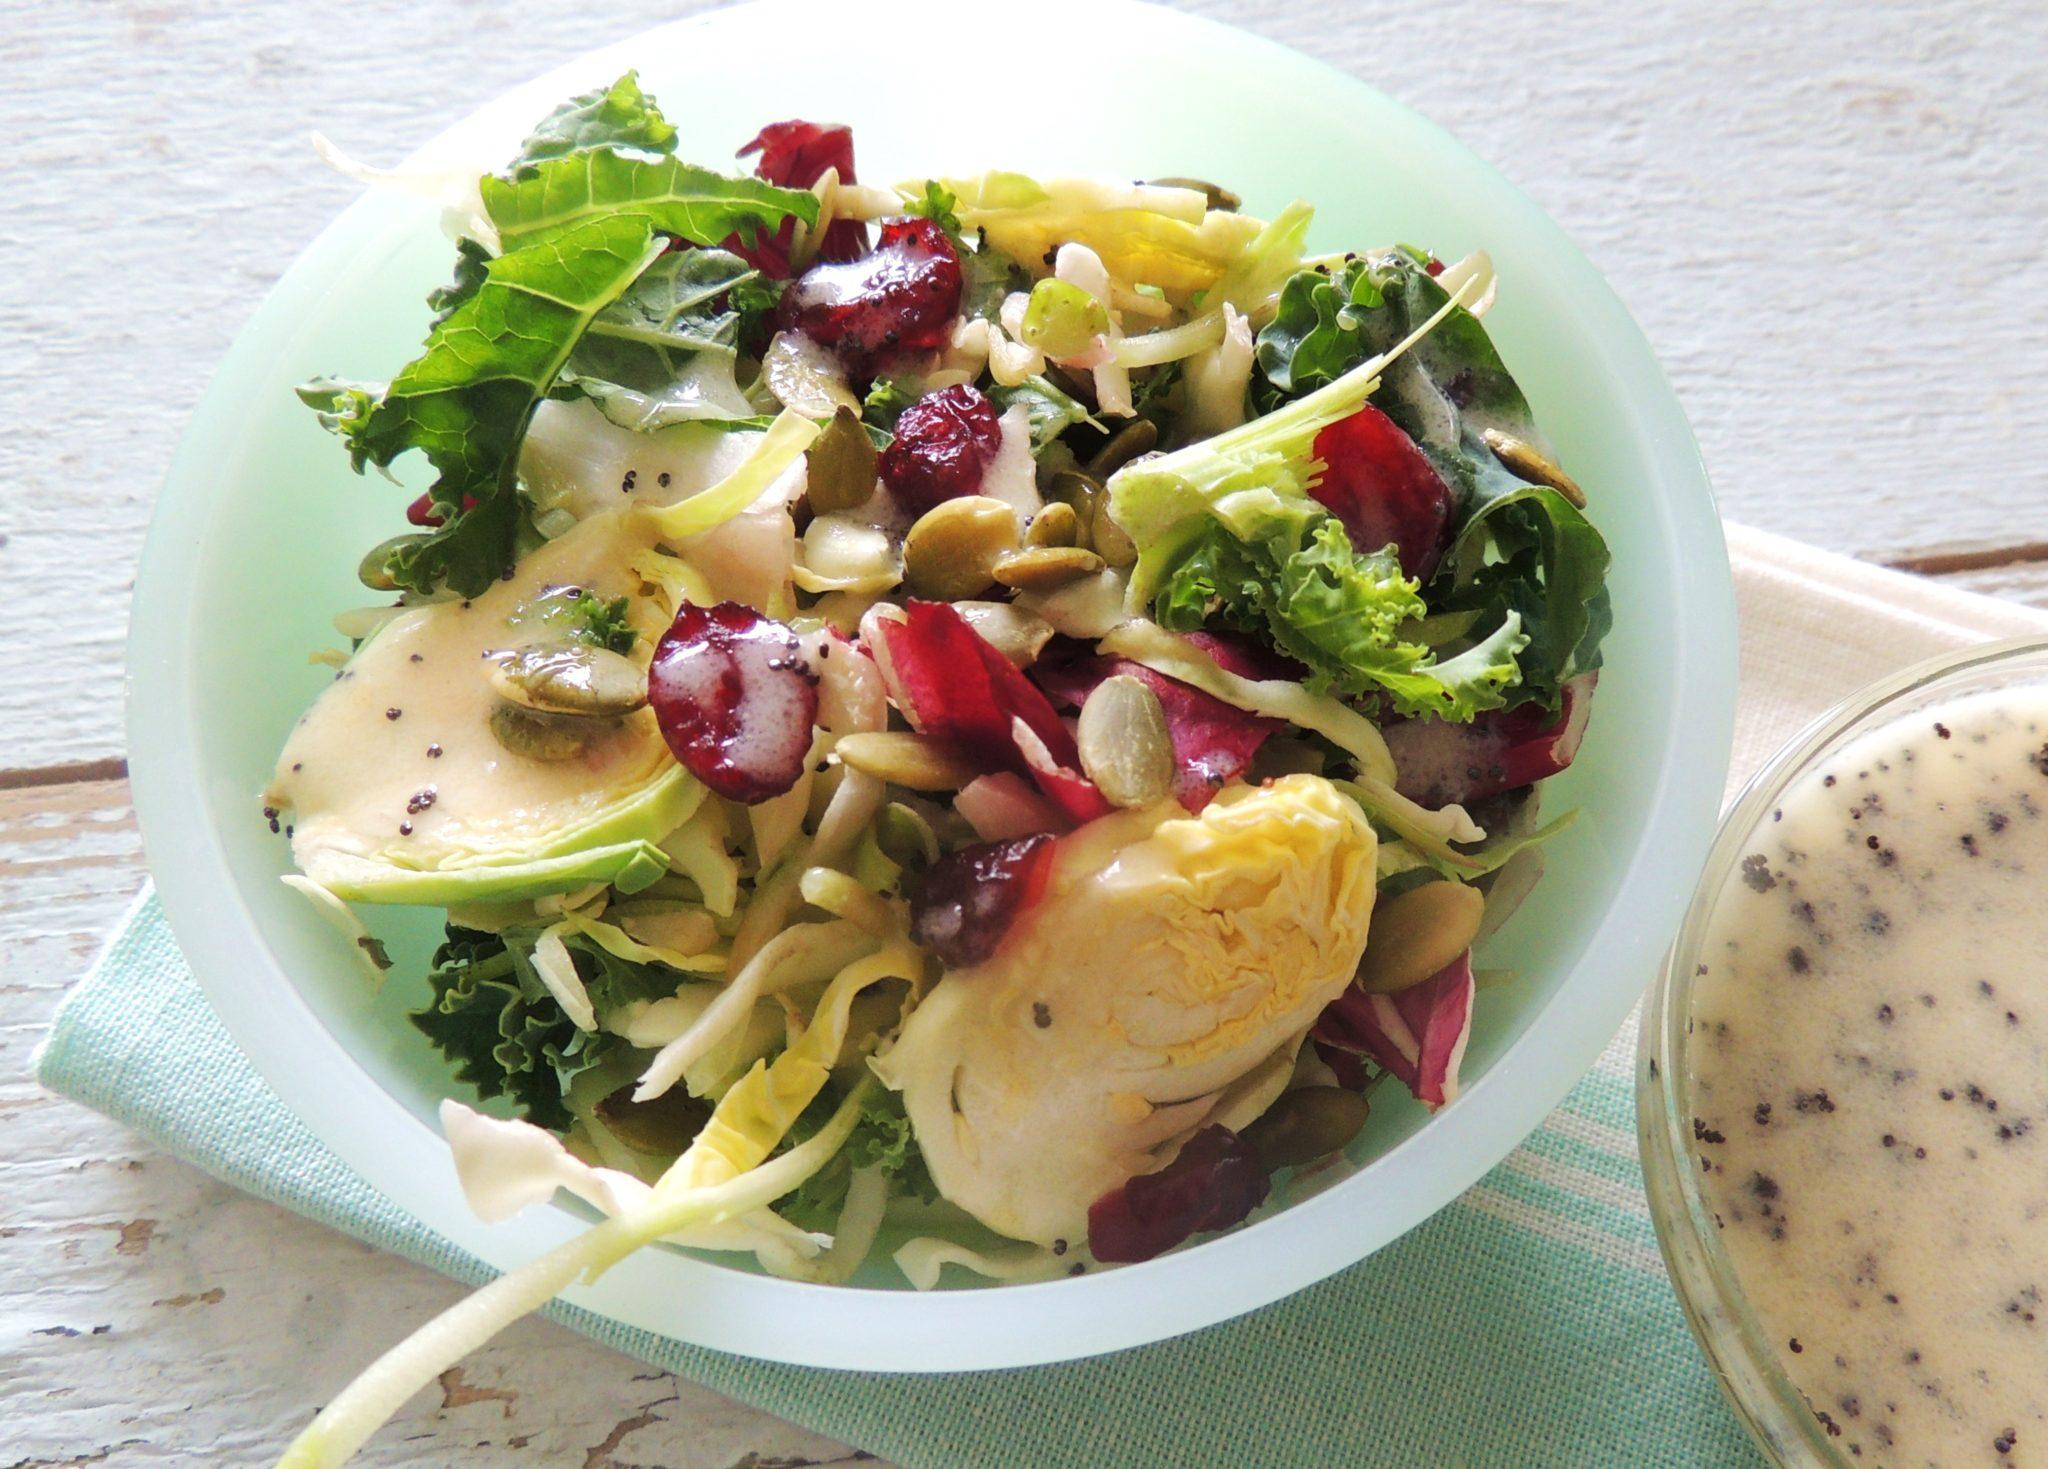 Kale and Brussel Sprout Coleslaw with Poppy Seed Dressing